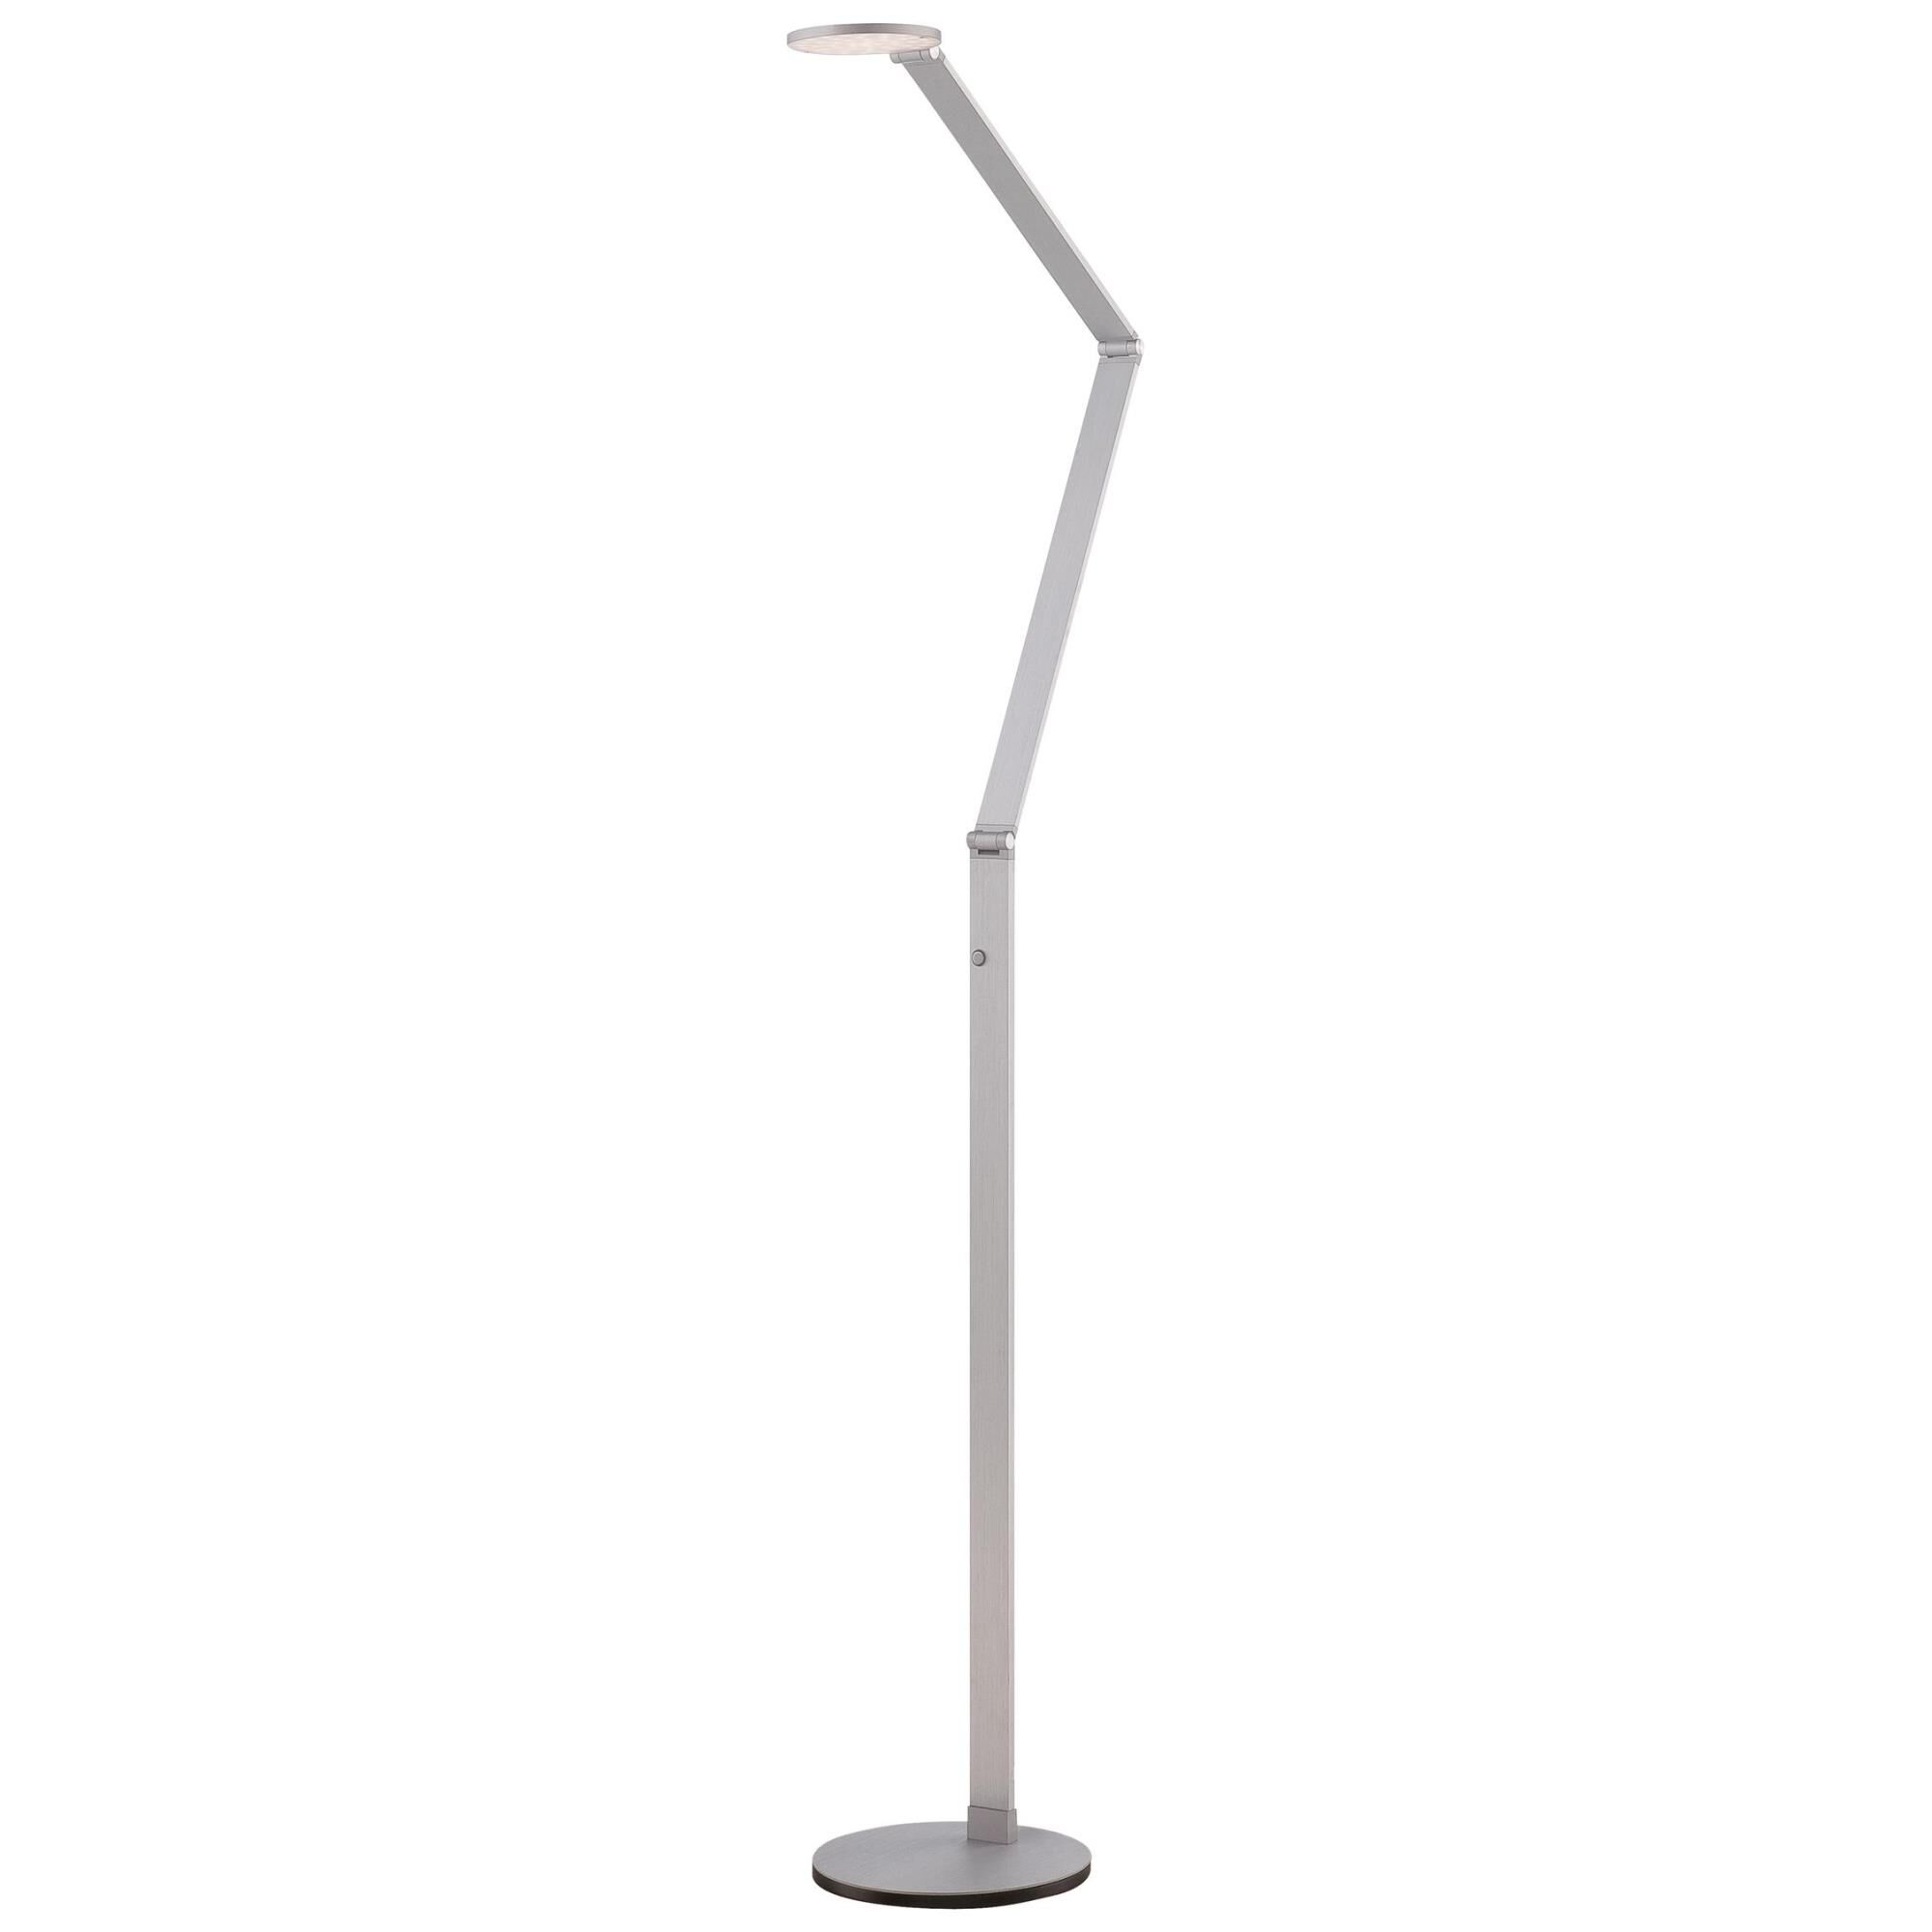 Kovacs Floor Lamp - P305-2-654-l - Modern Contemporary